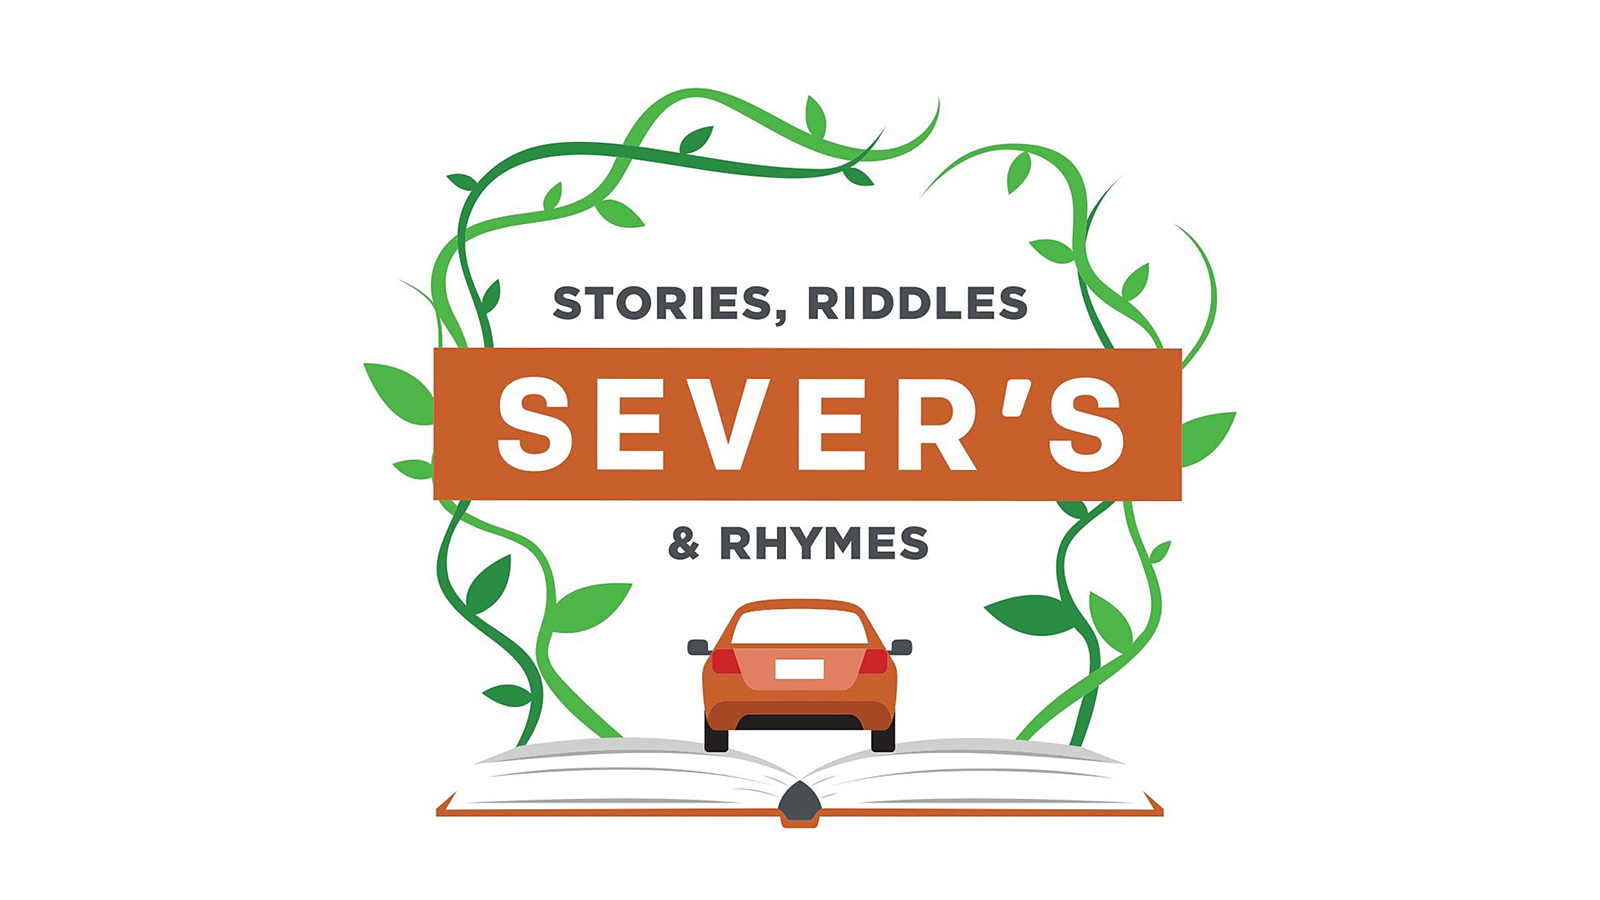 Sever's Stories, Riddles, & Rhymes